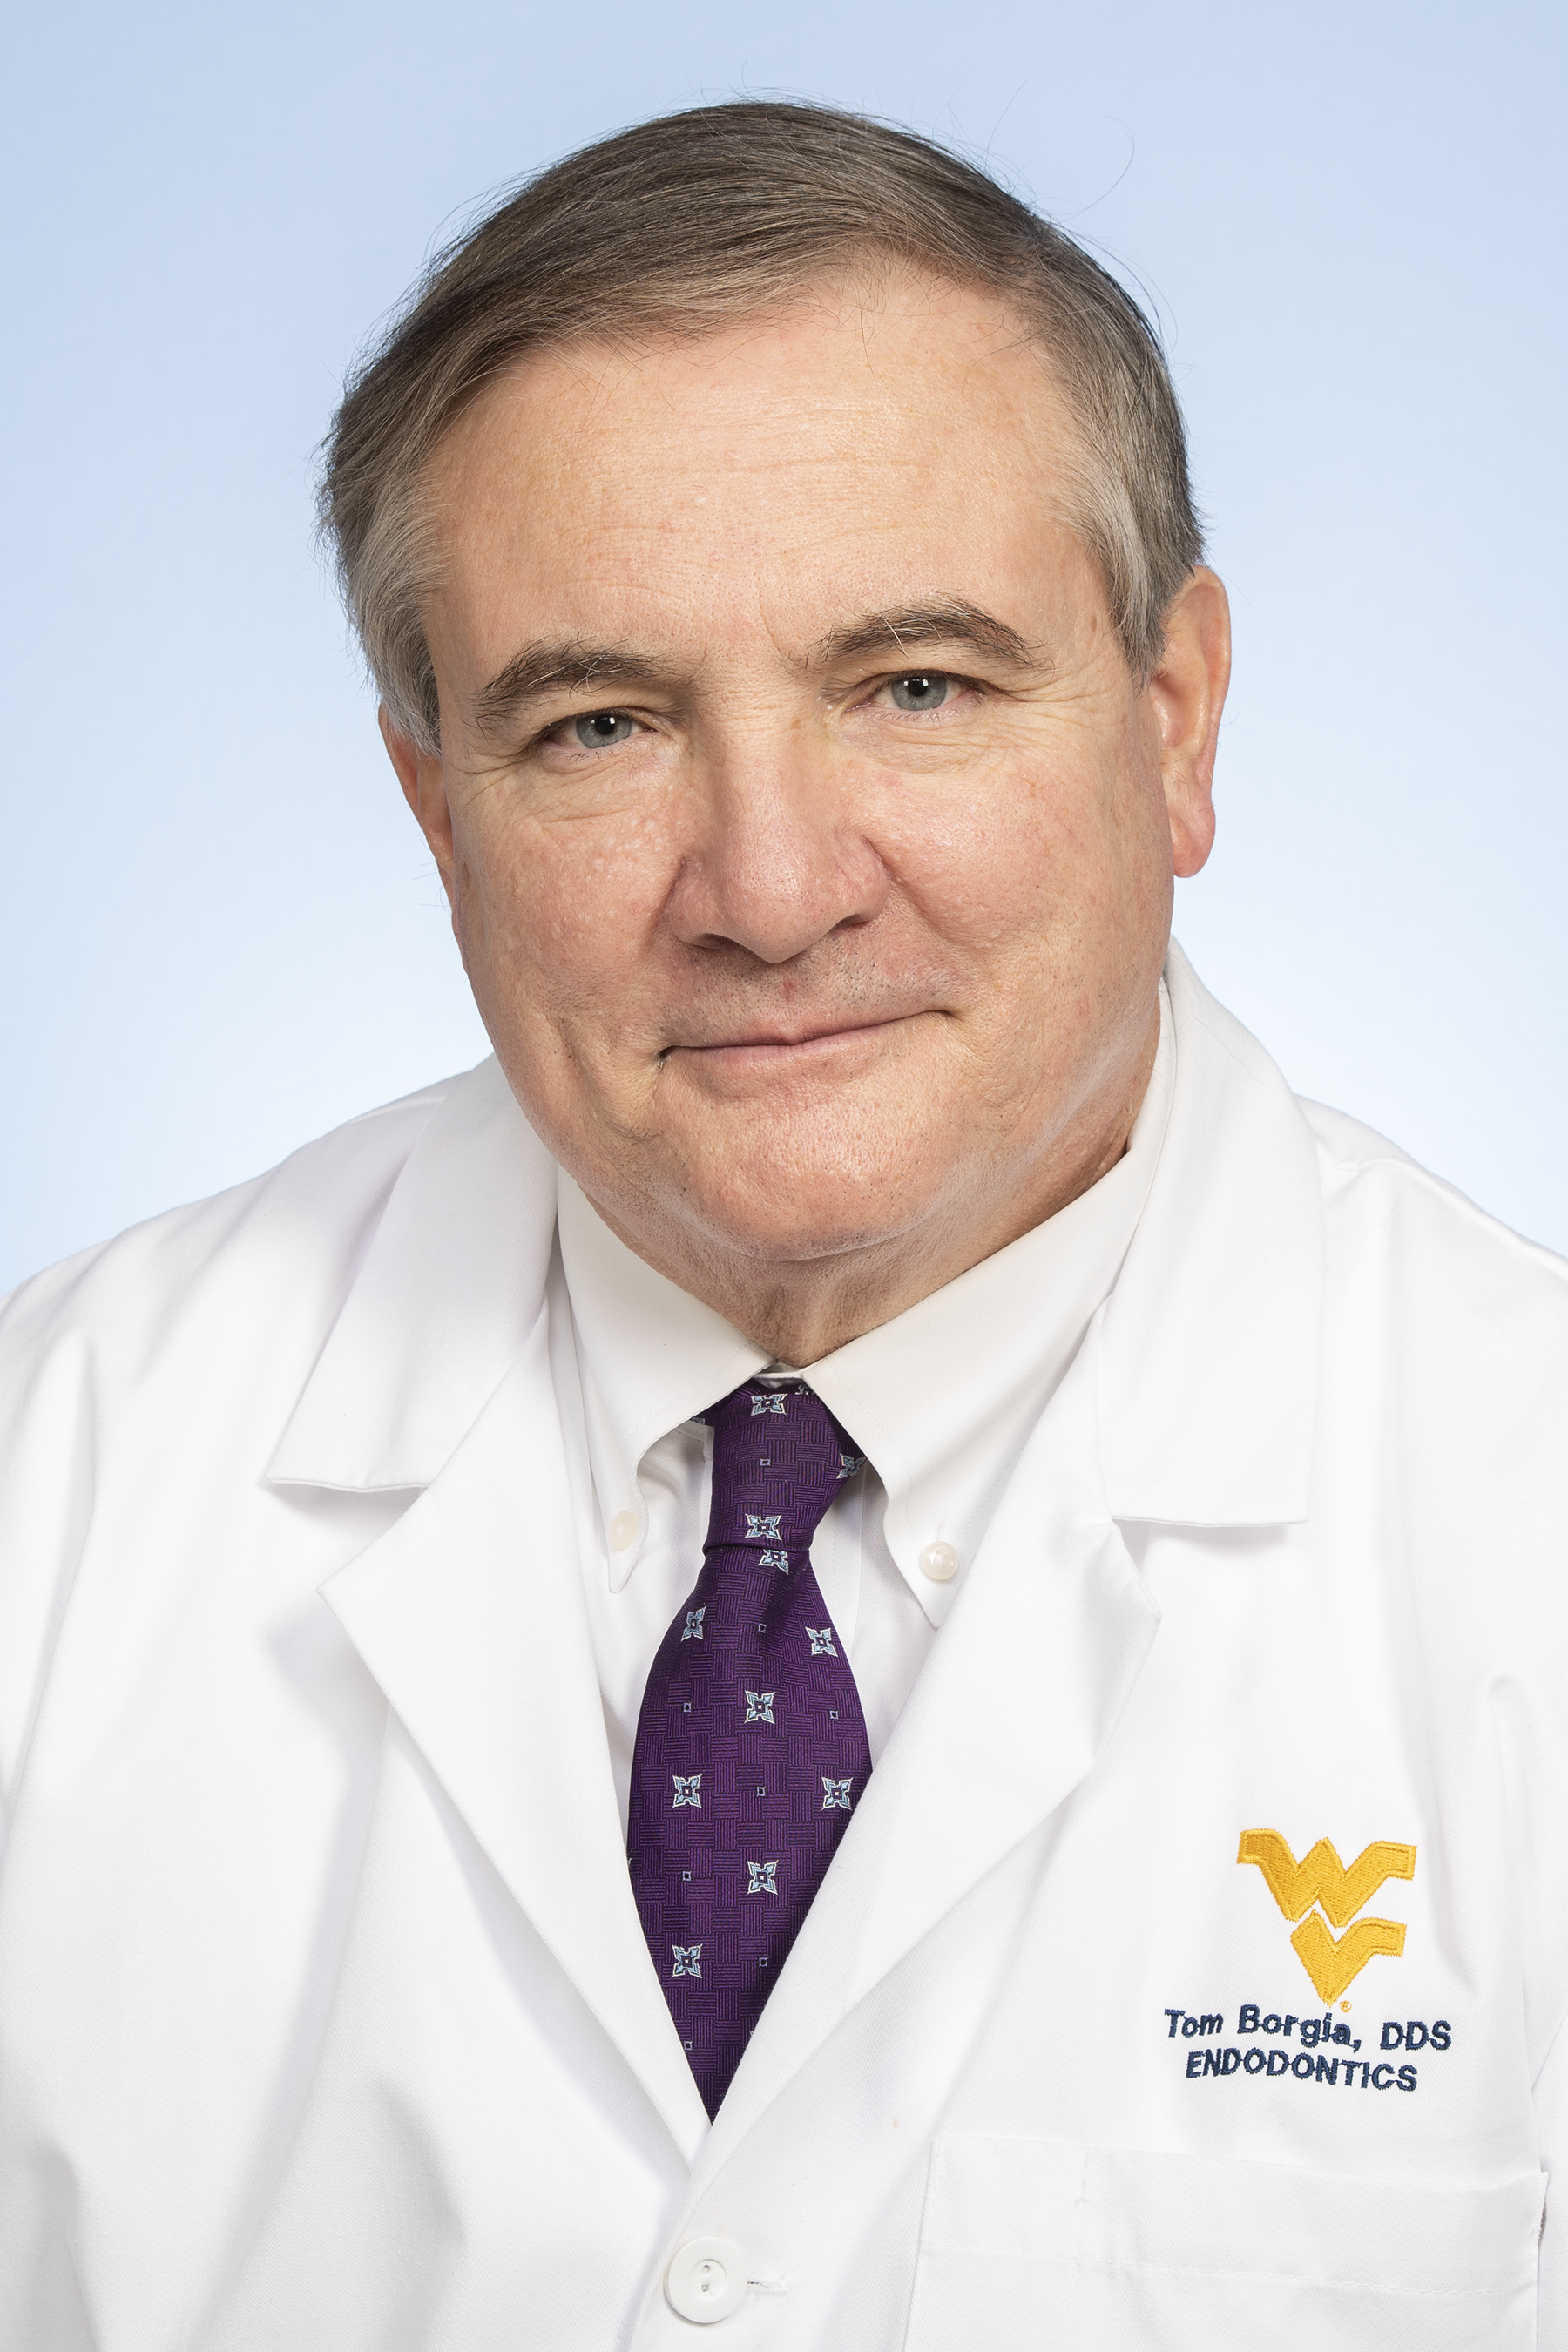 Dr. Anthony Tom Borgia was the WVU dental school dean for 5 years after being a chair and professor.